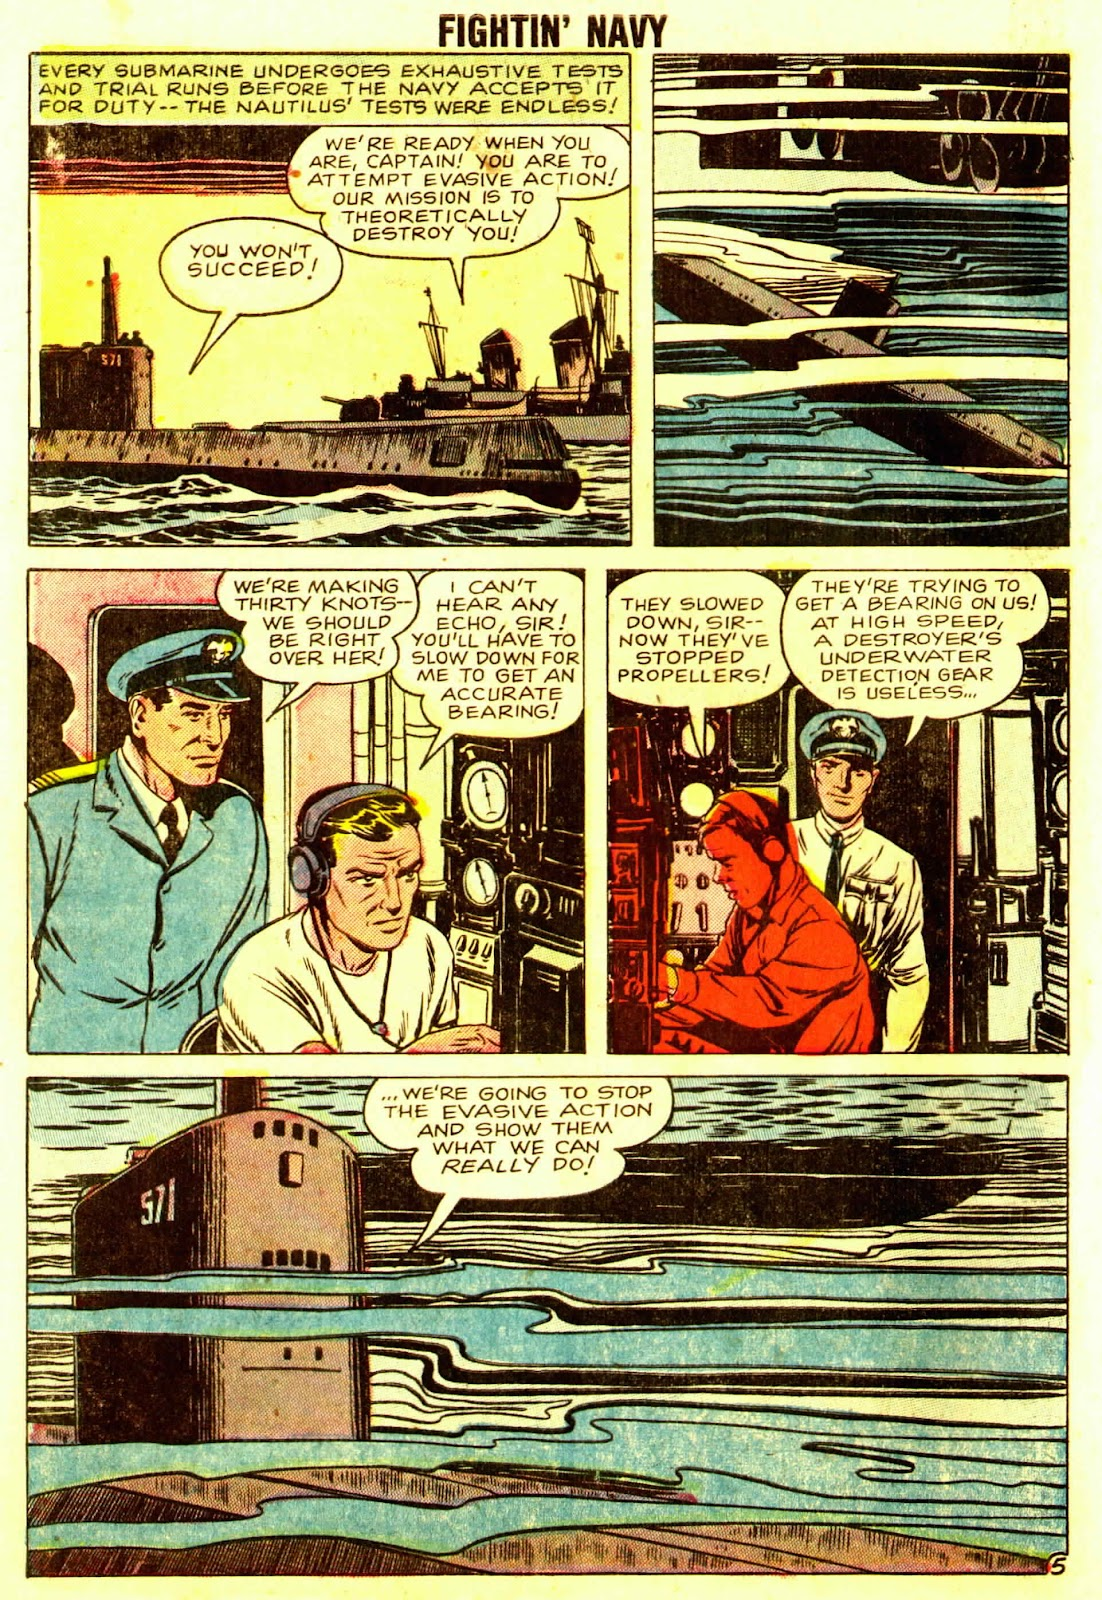 Read online Fightin' Navy comic -  Issue #83 - 56